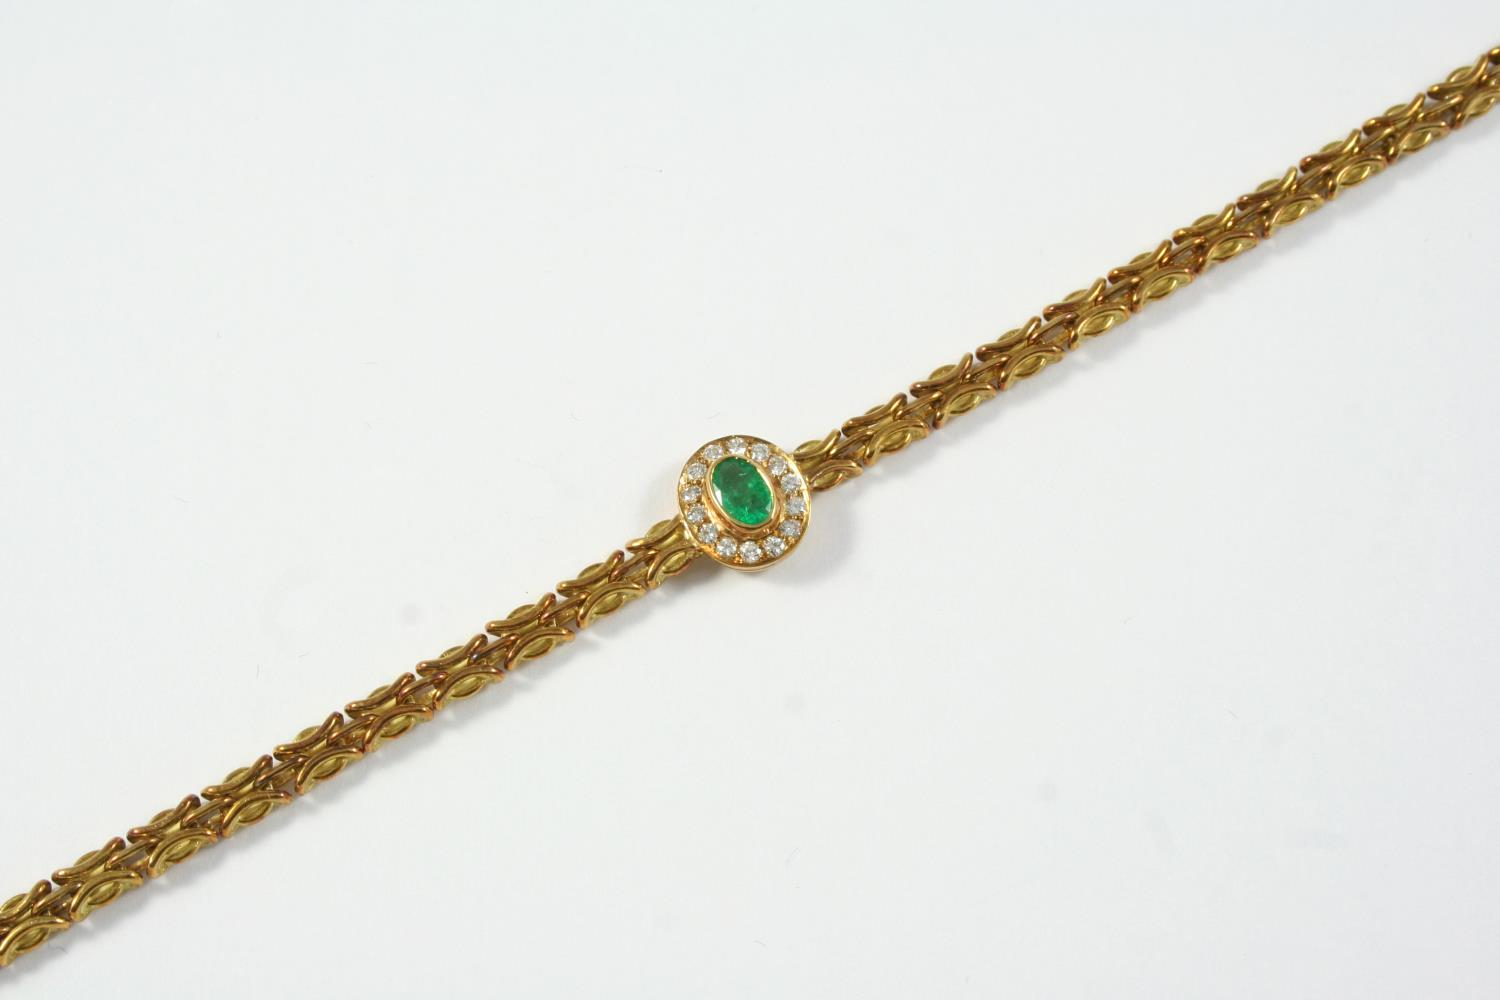 A GOLD, EMERALD AND DIAMOND BRACELET the yellow gold fancy link bracelet is mounted with an